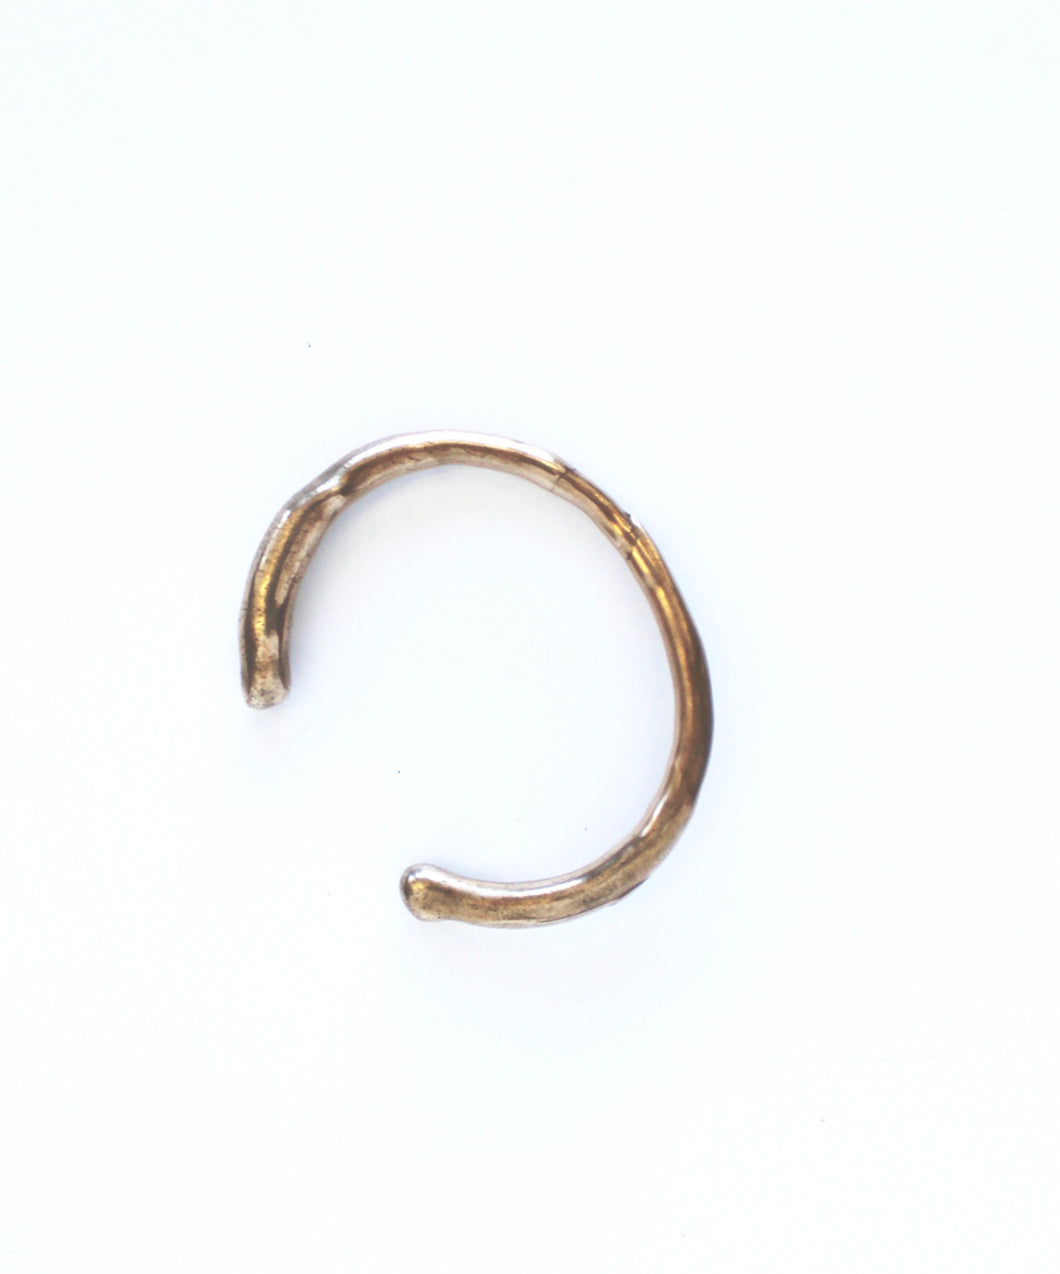 metals :: bronze bracelet - thick